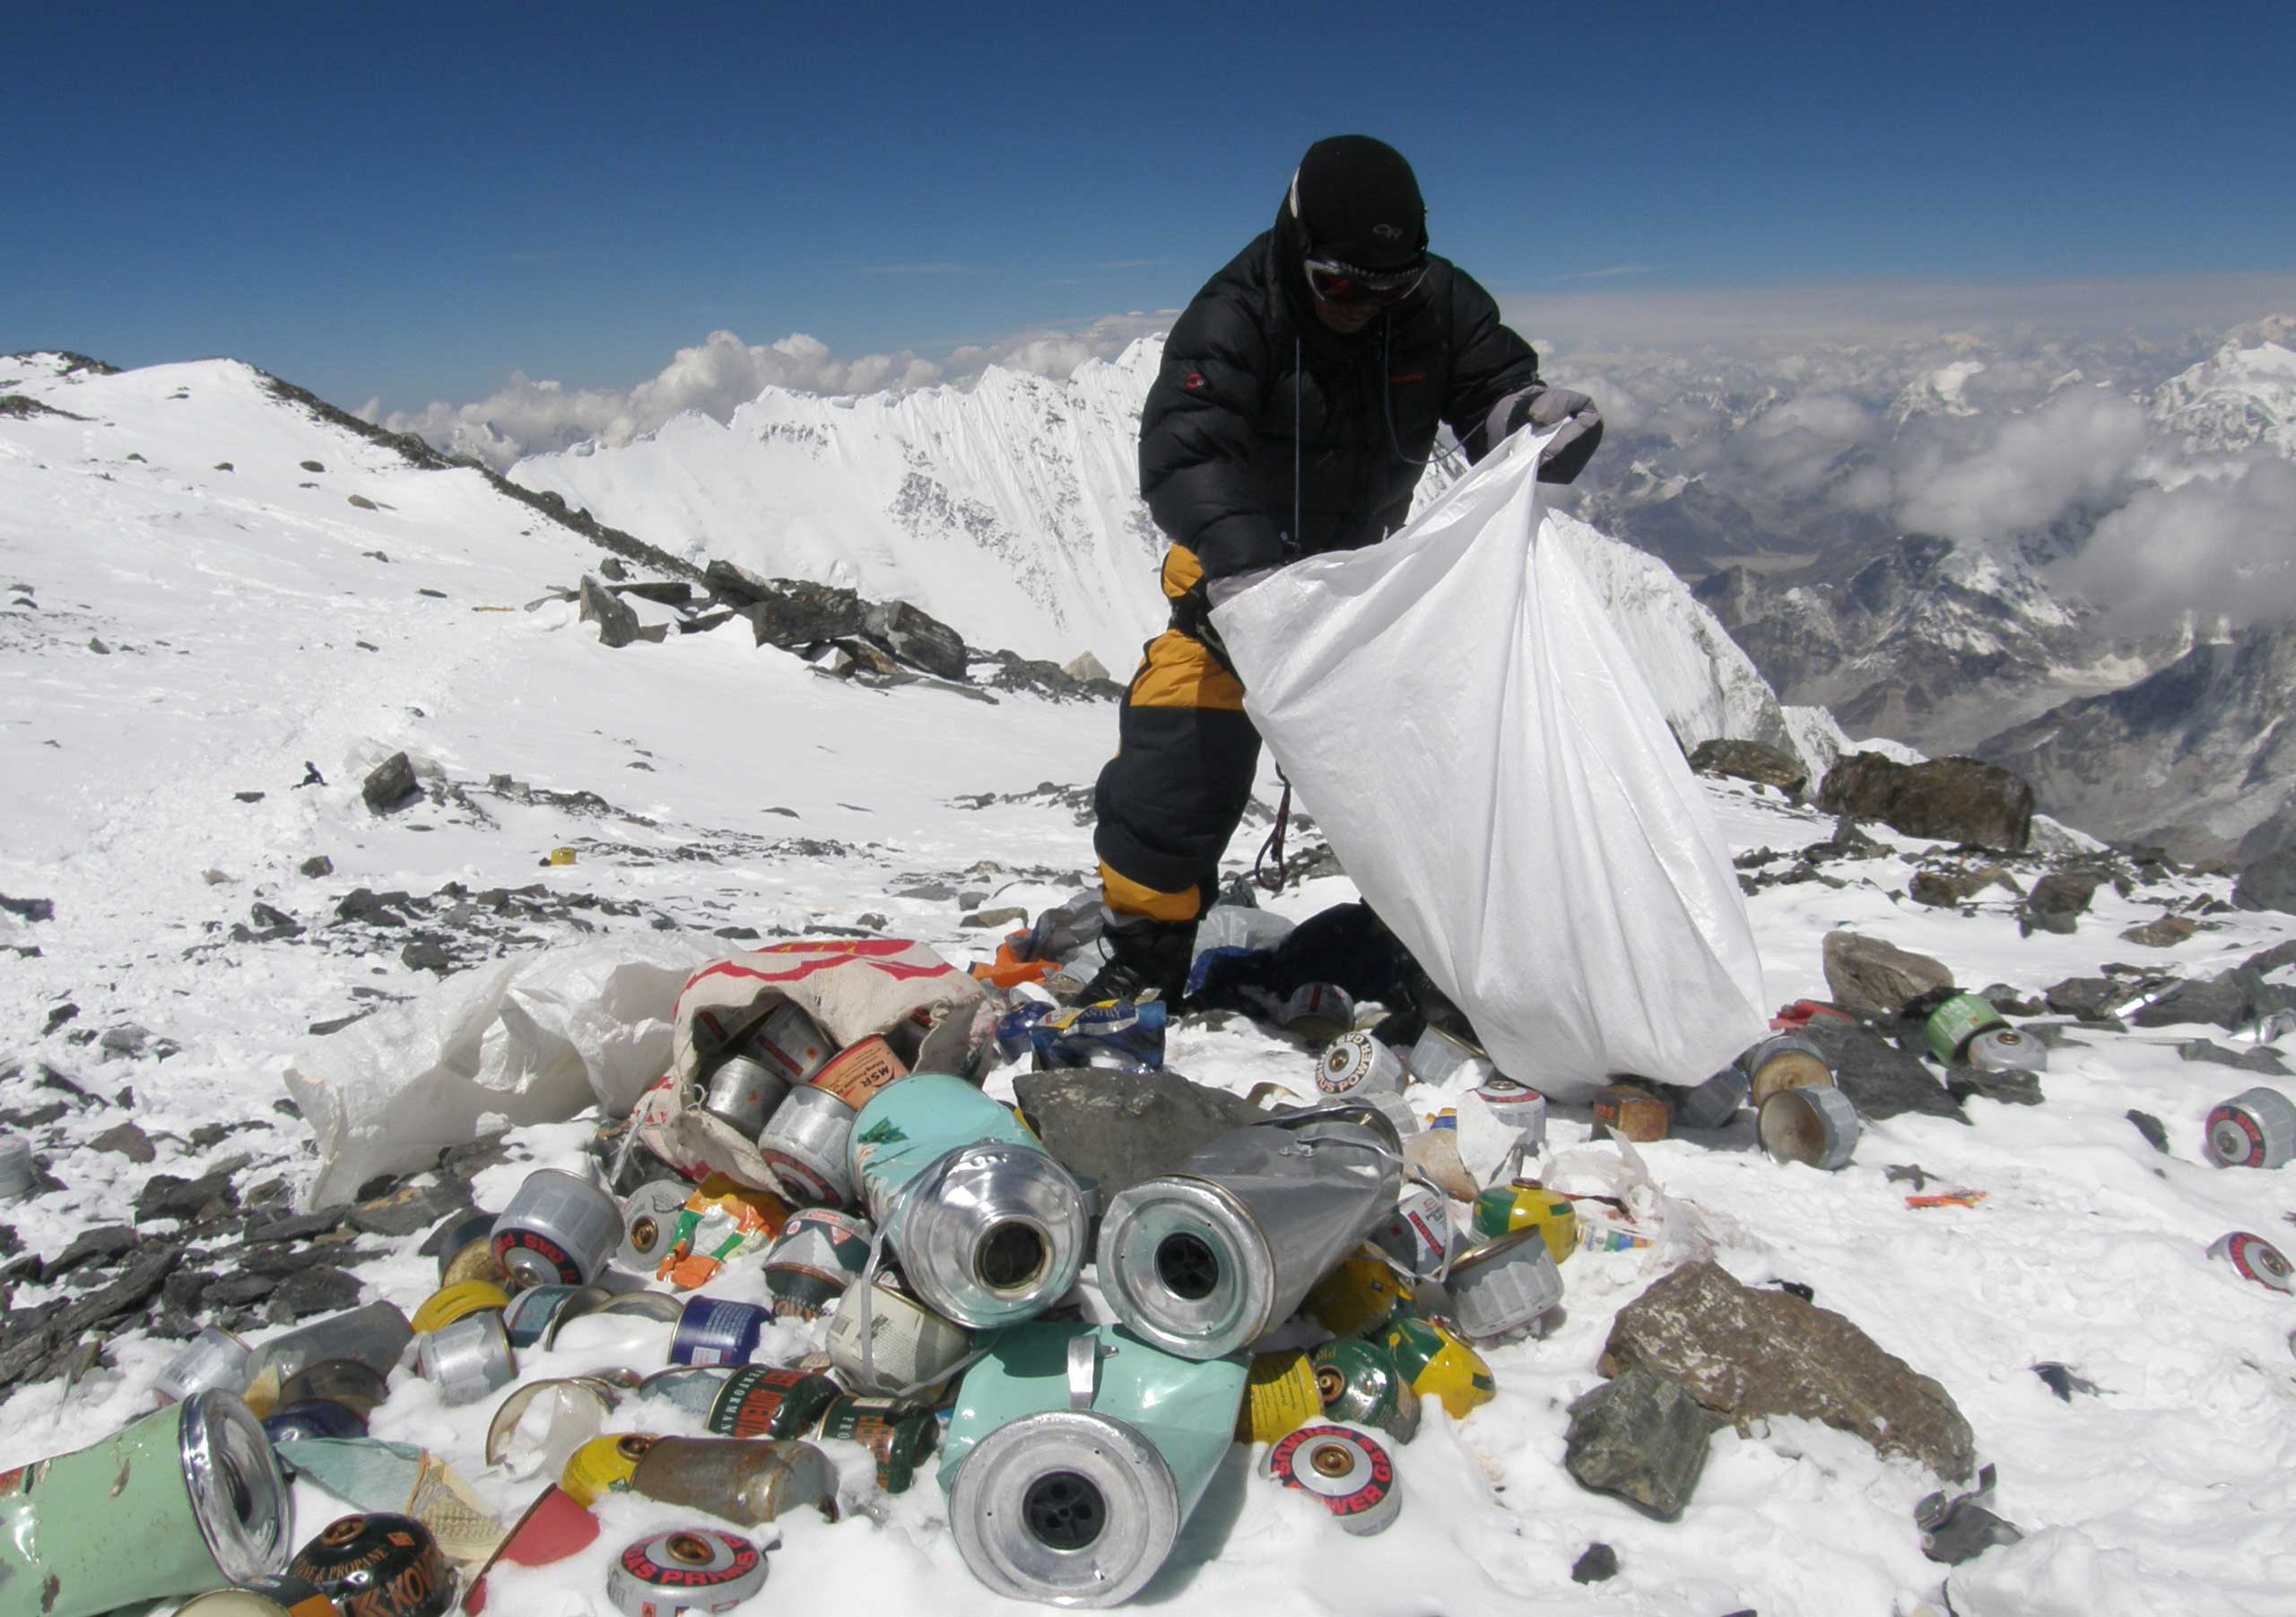 This picture taken on May 23, 2010 shows a Nepalese sherpa collecting garbage, left by climbers, at an altitude of 8,000 meters during the Everest clean-up expedition at Mount Everest.